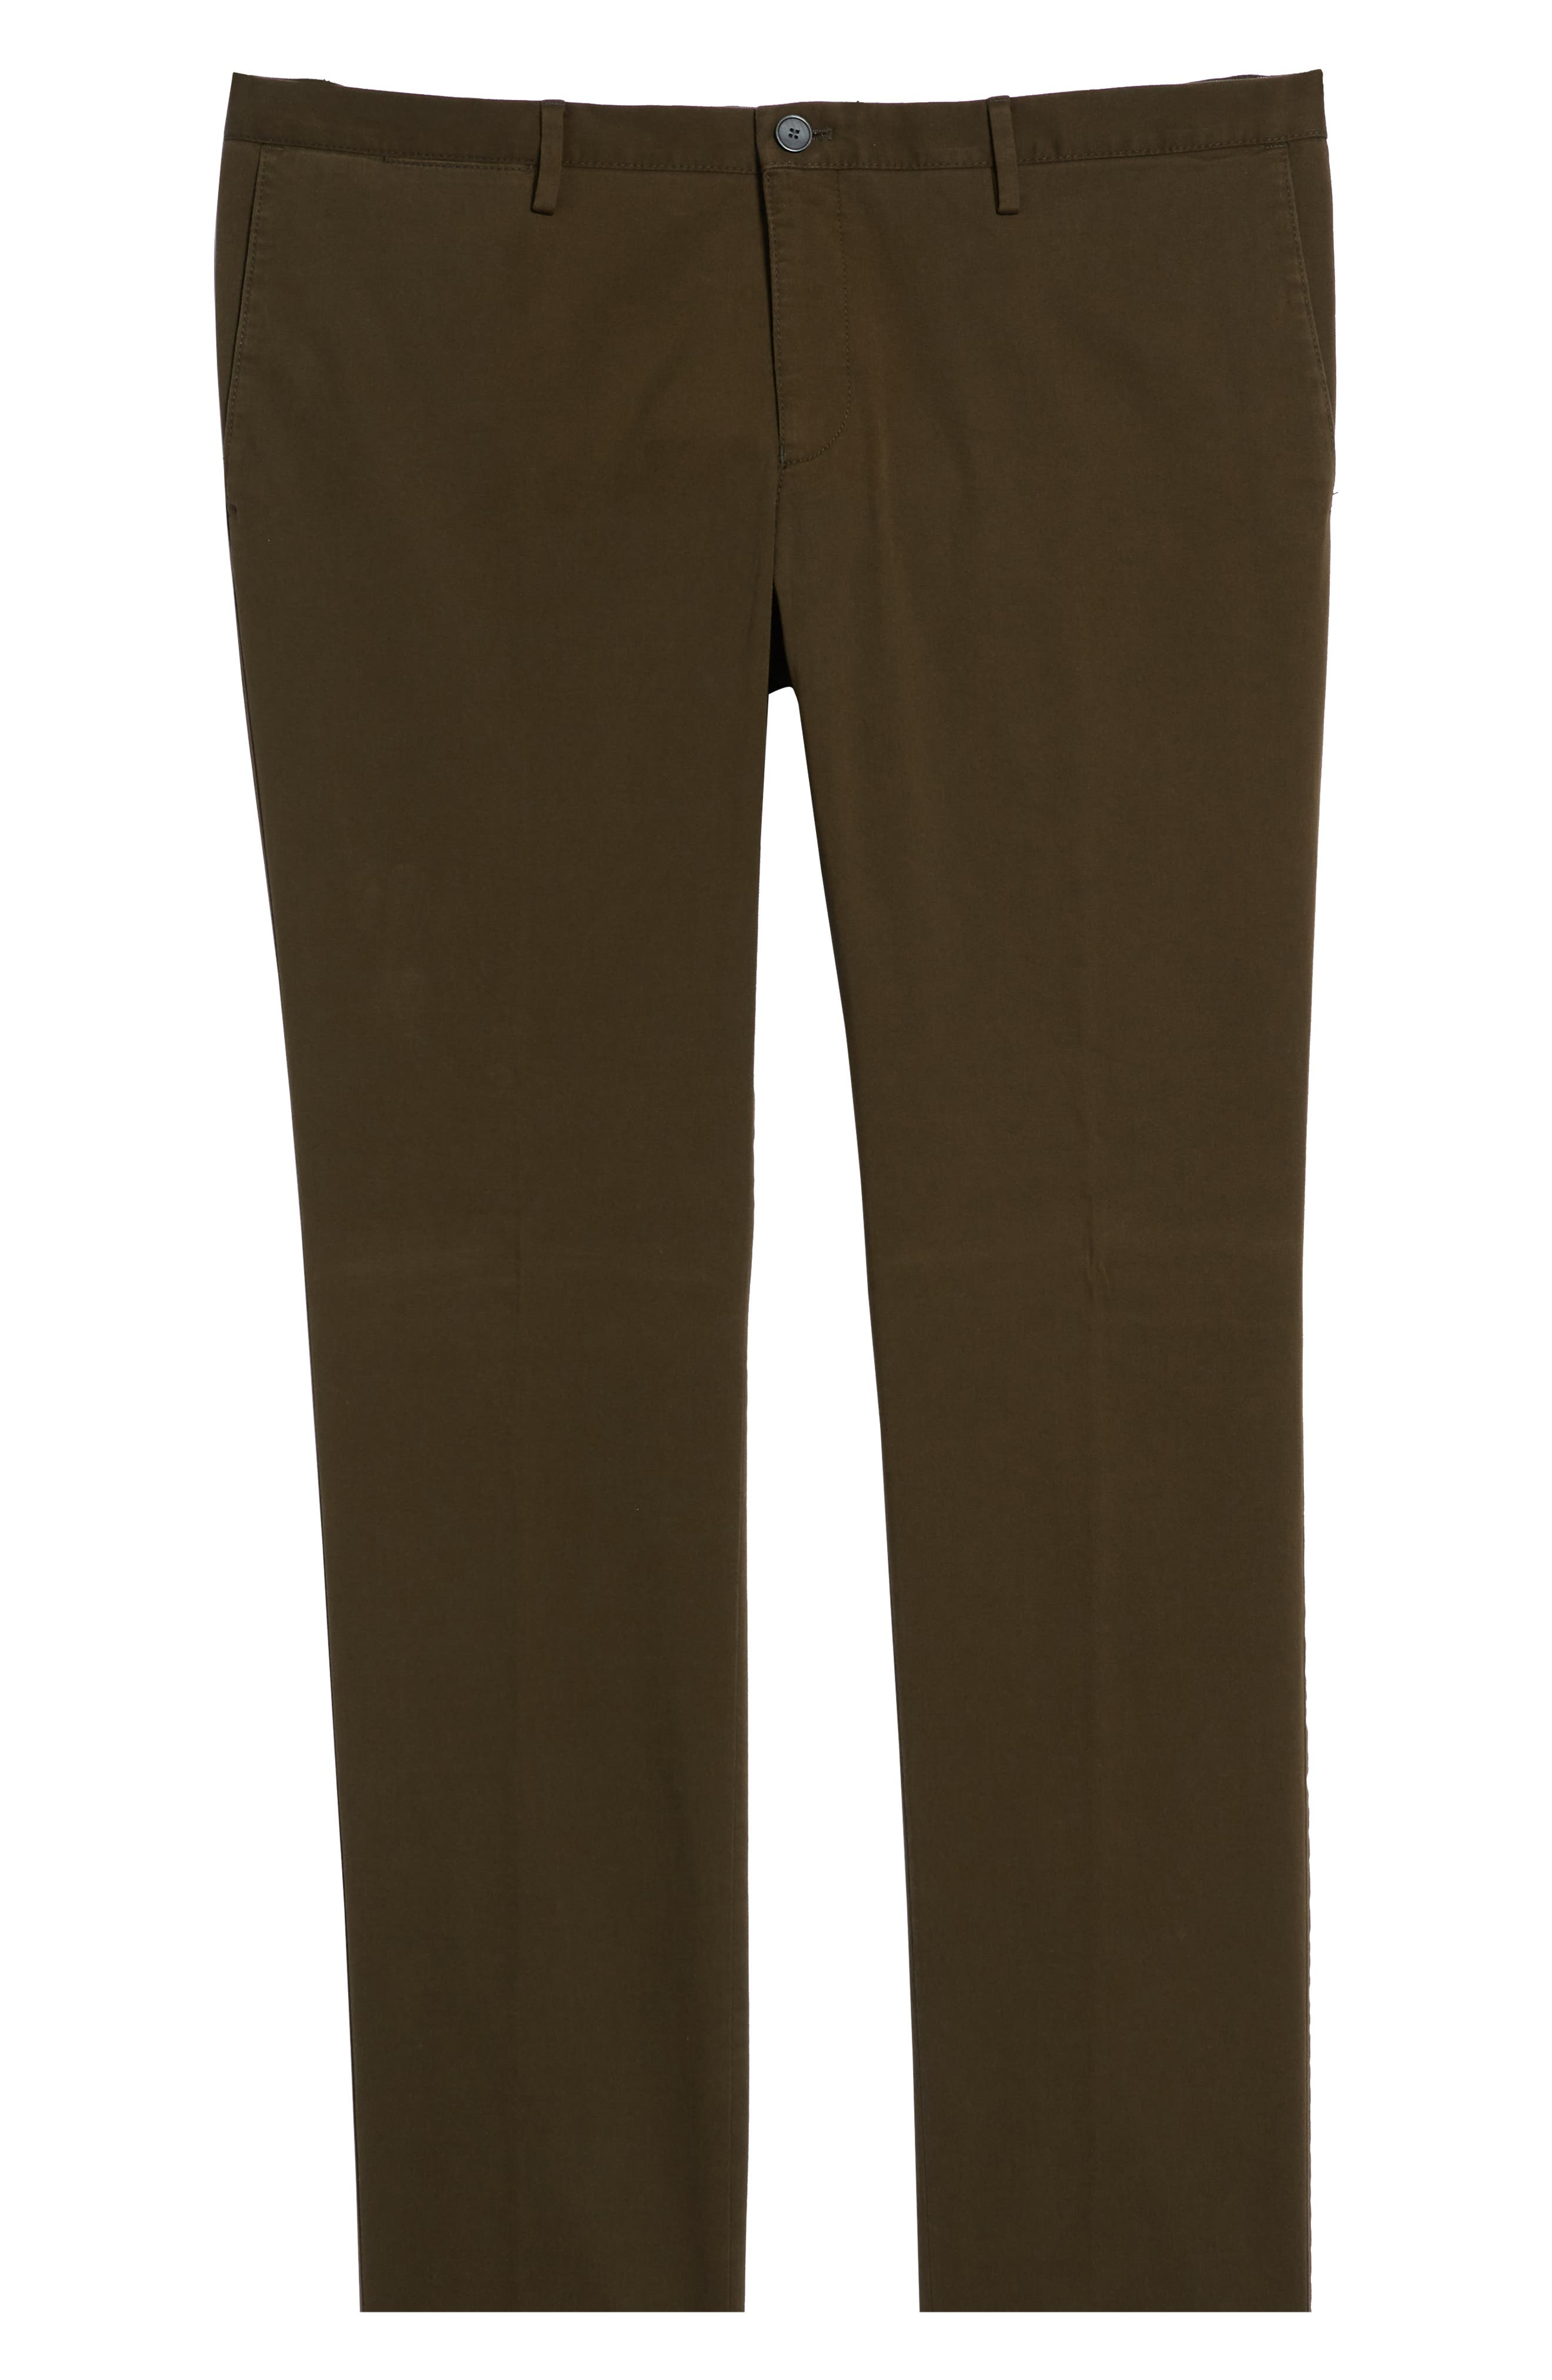 Stanino Flat Front Stretch Cotton Solid Trousers,                             Alternate thumbnail 6, color,                             OLIVE